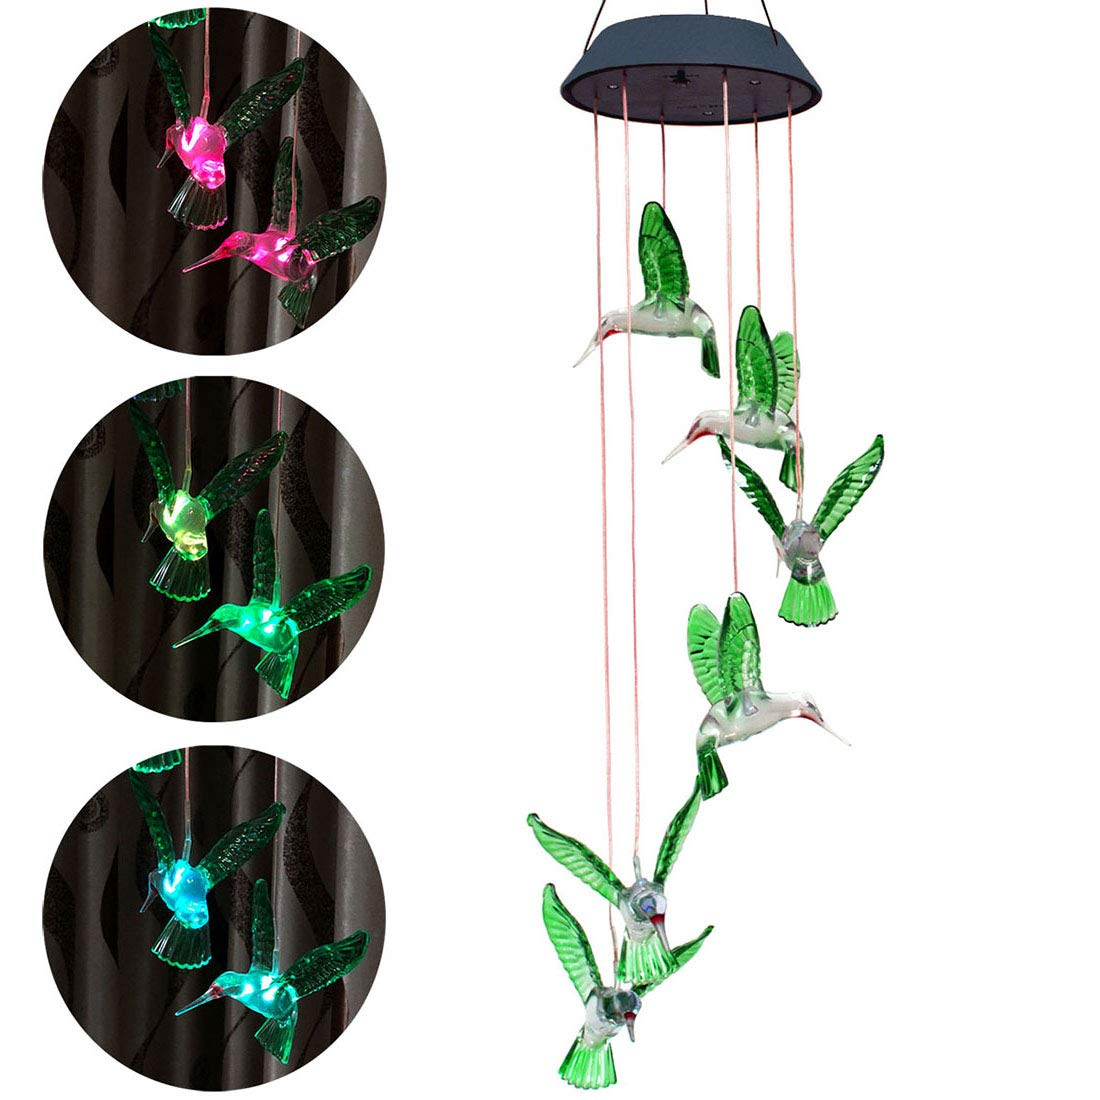 Viewpick Solar Wind Chime Changing Colors Six Hummingbird Lamp Waterproof Solar Hanging Light for Home Garden Outdoor Decoration